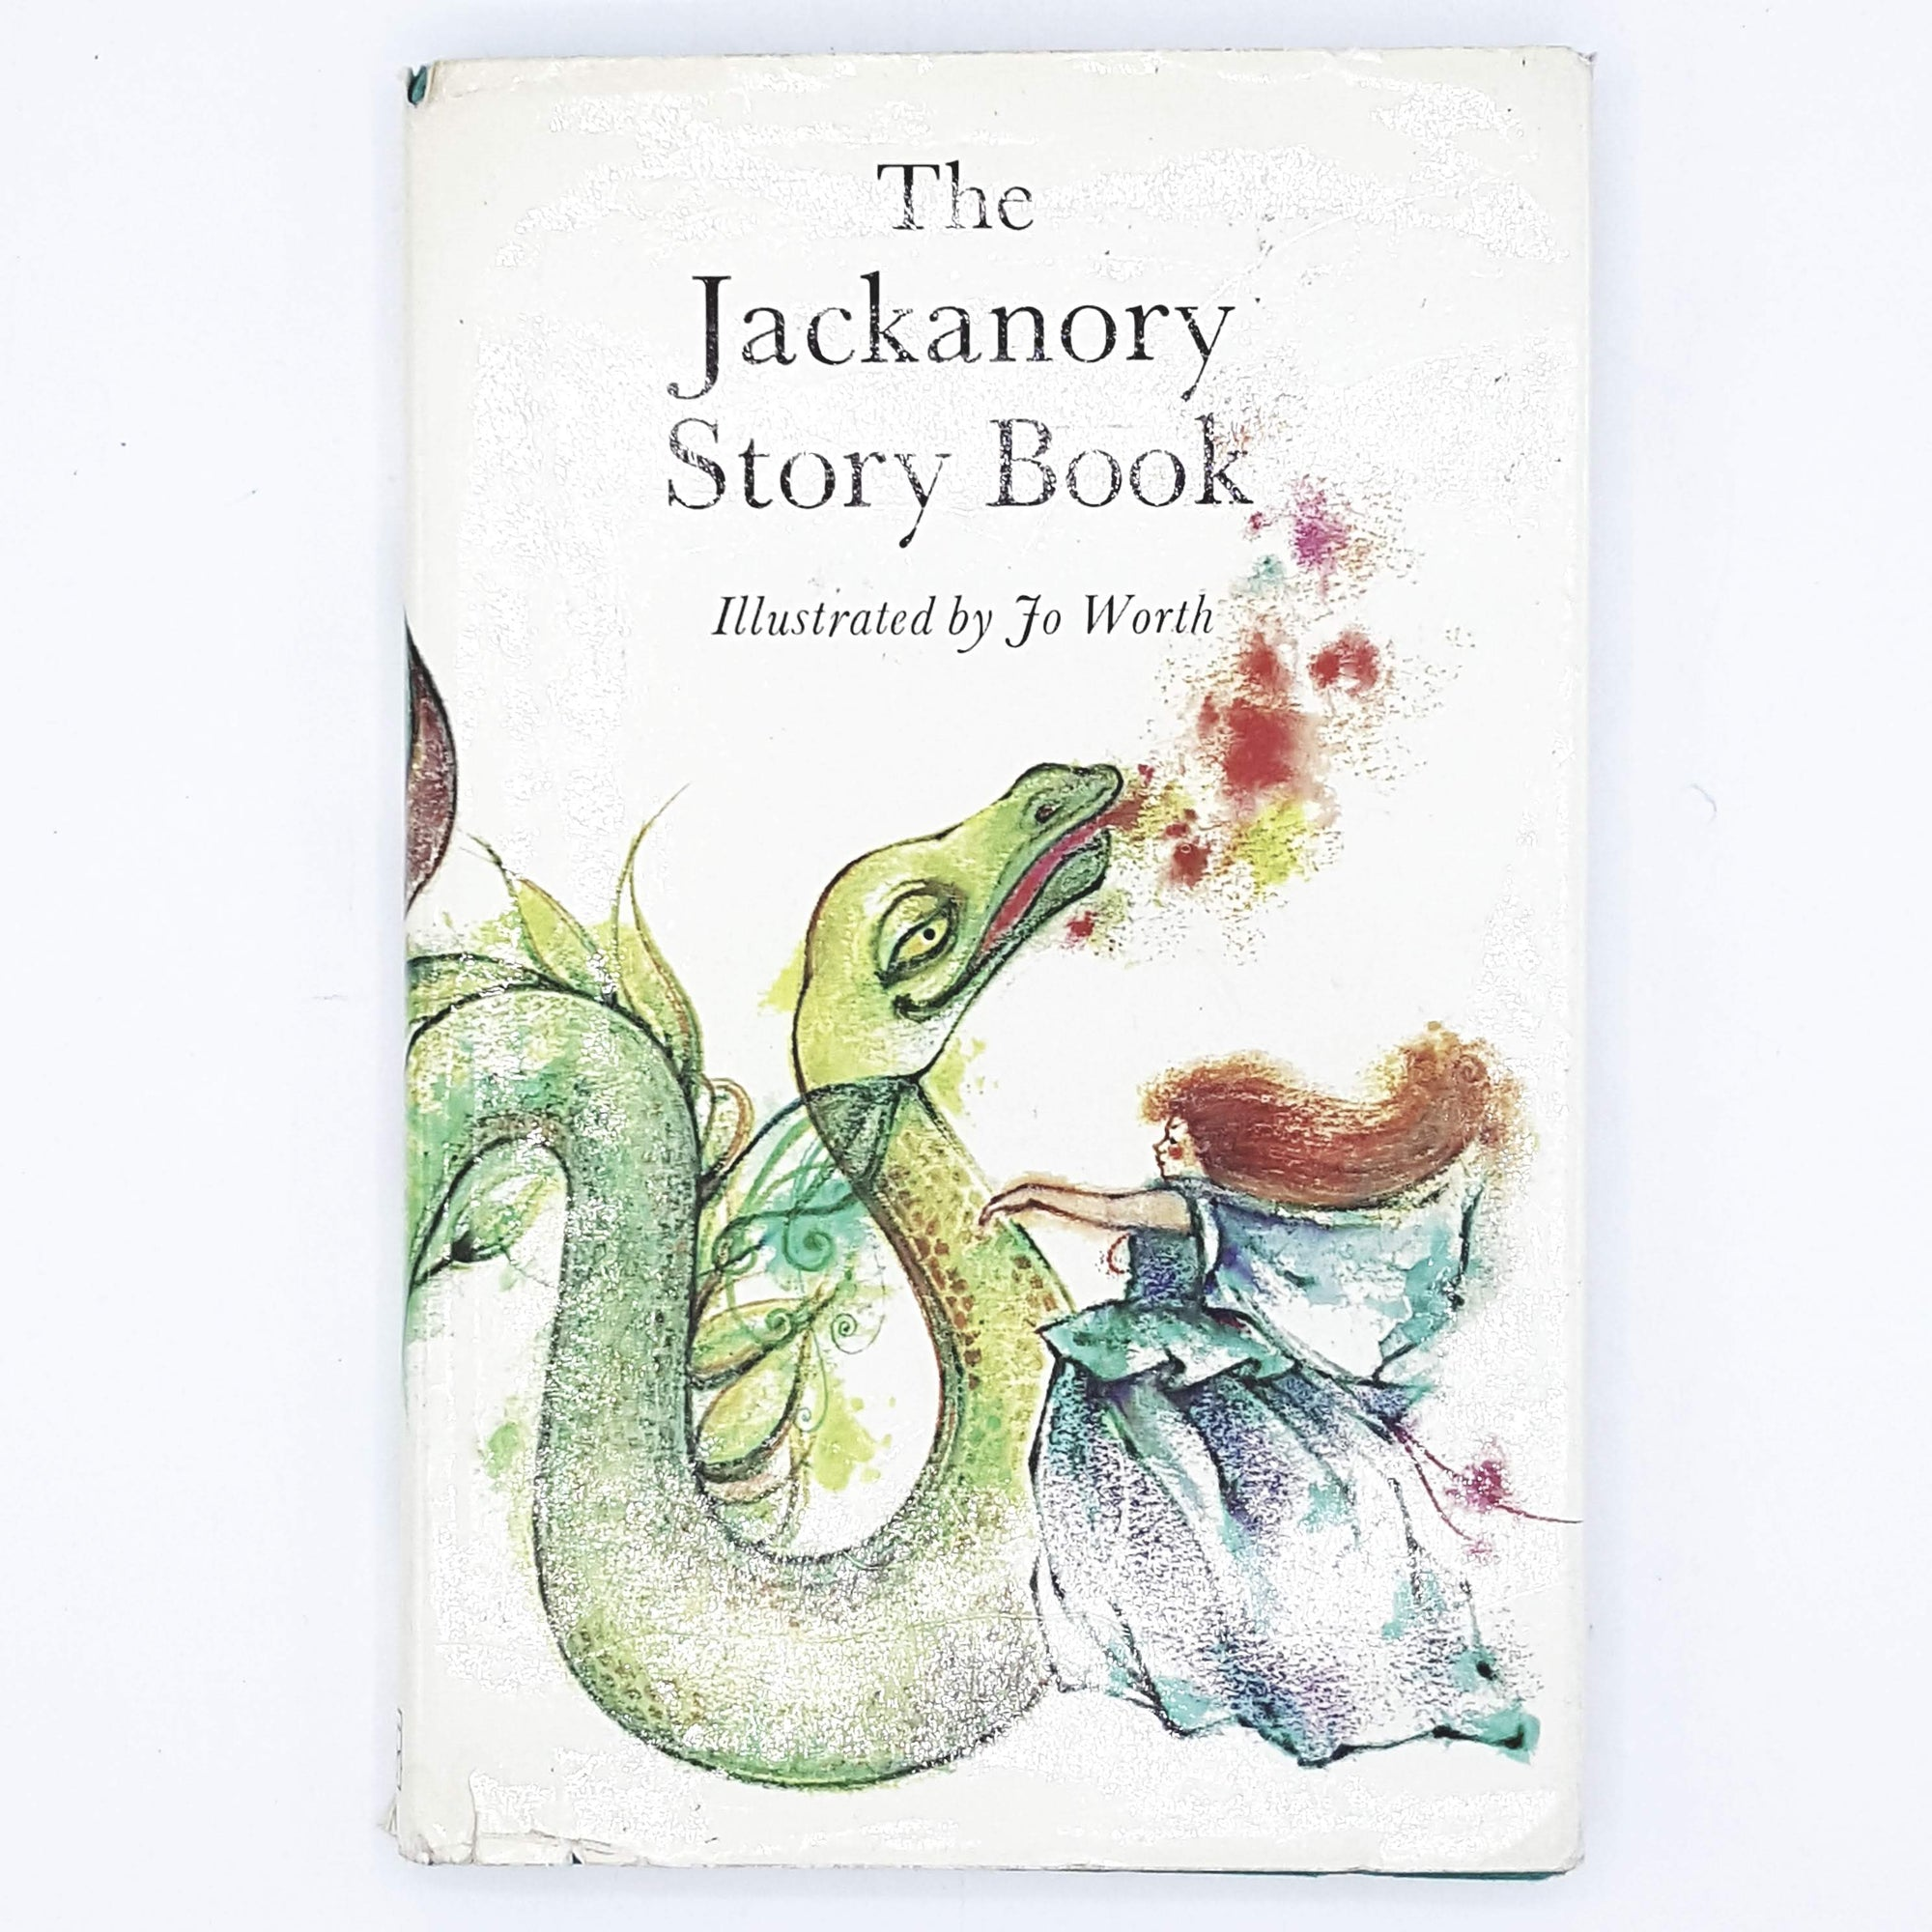 Illustrated the Jackanory Story Book 1979